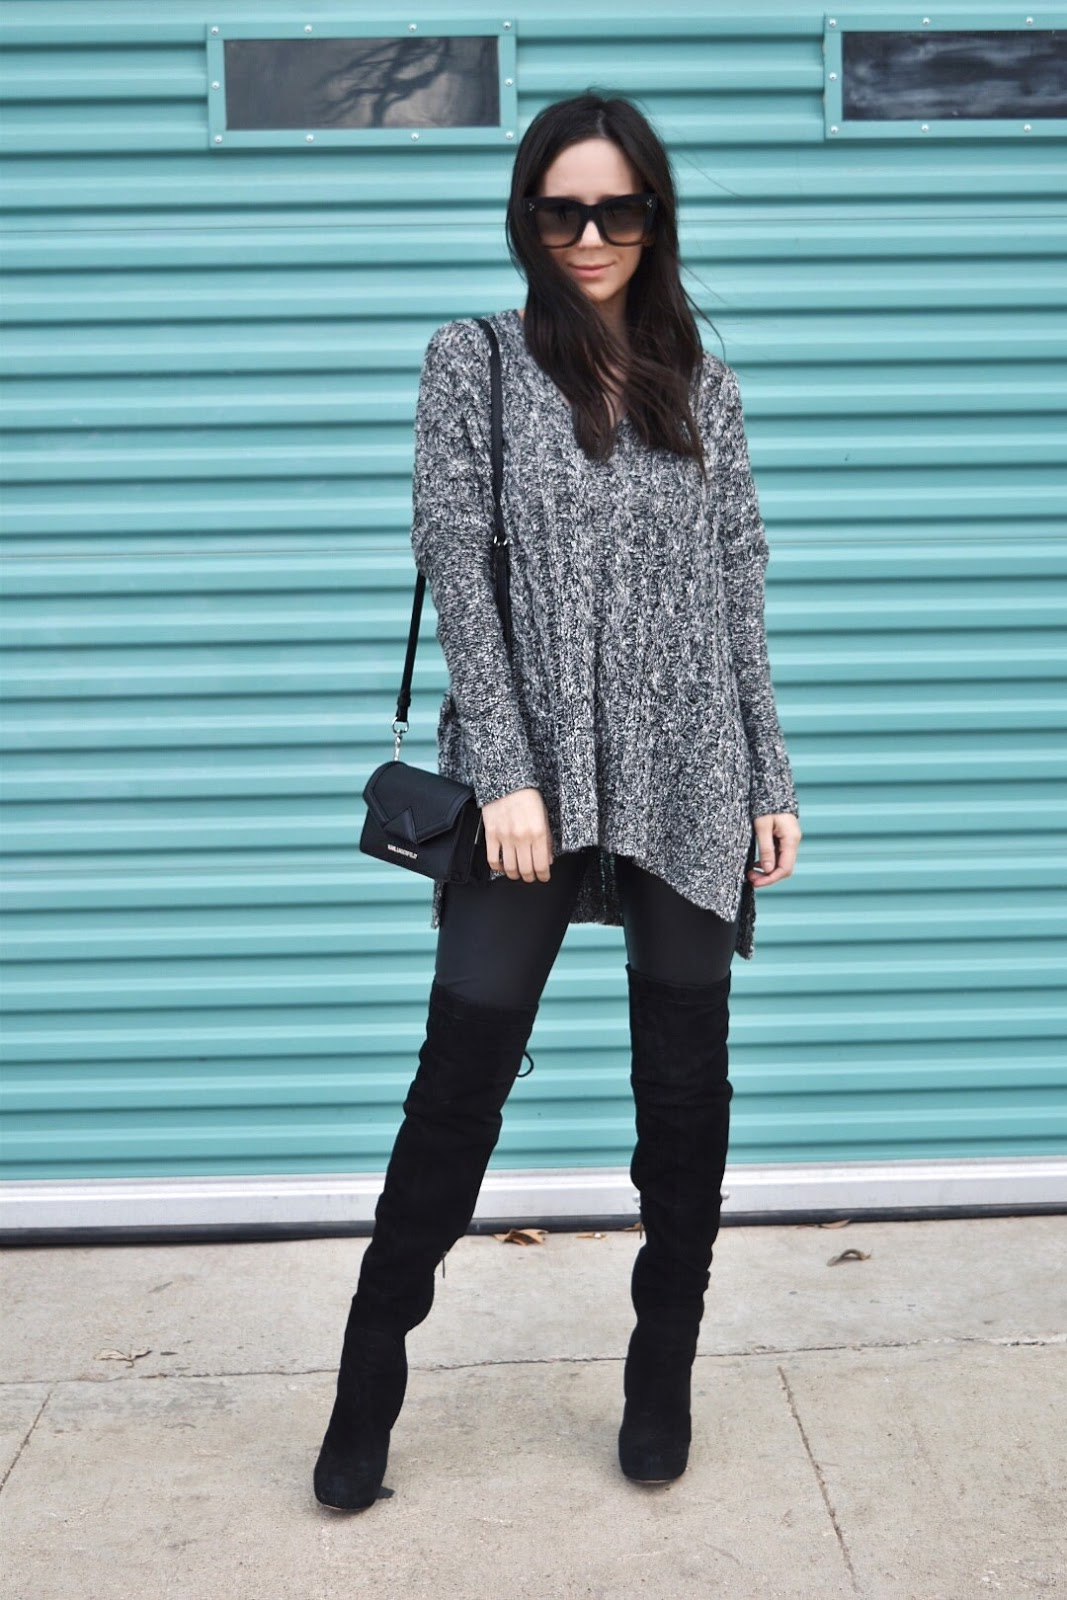 Oversize Sweater and Knee High Boots